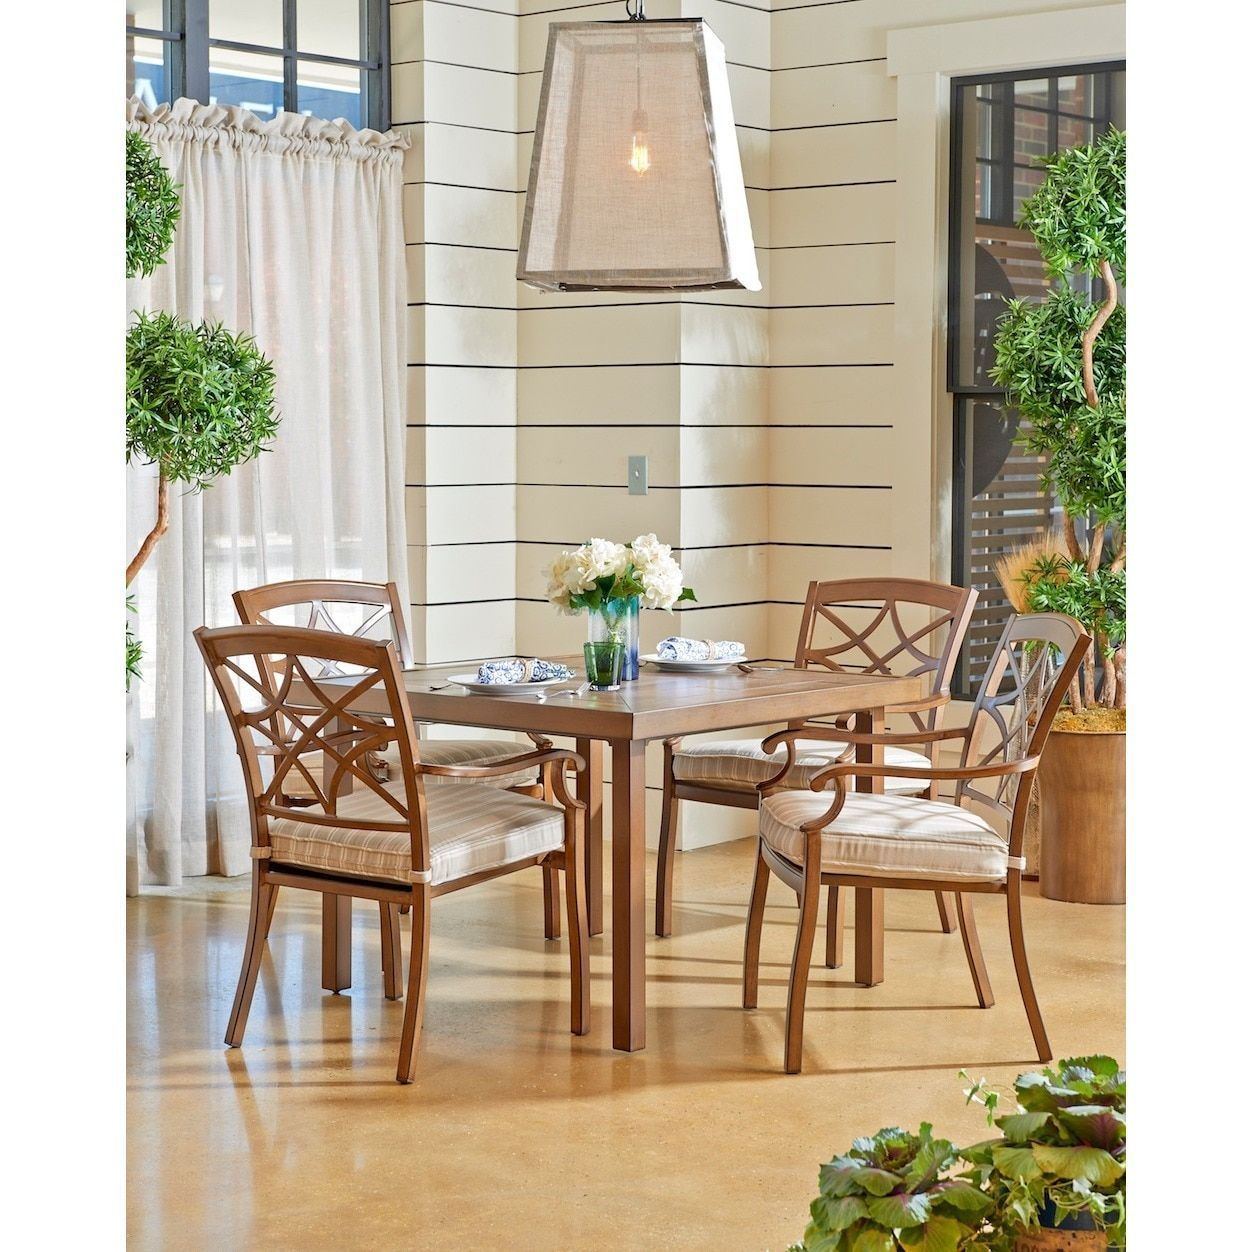 Klaussner Furniture Made To Order Trisha Yearwood Outdoor 42 Gorgeous Klaussner Dining Room Furniture Inspiration Design